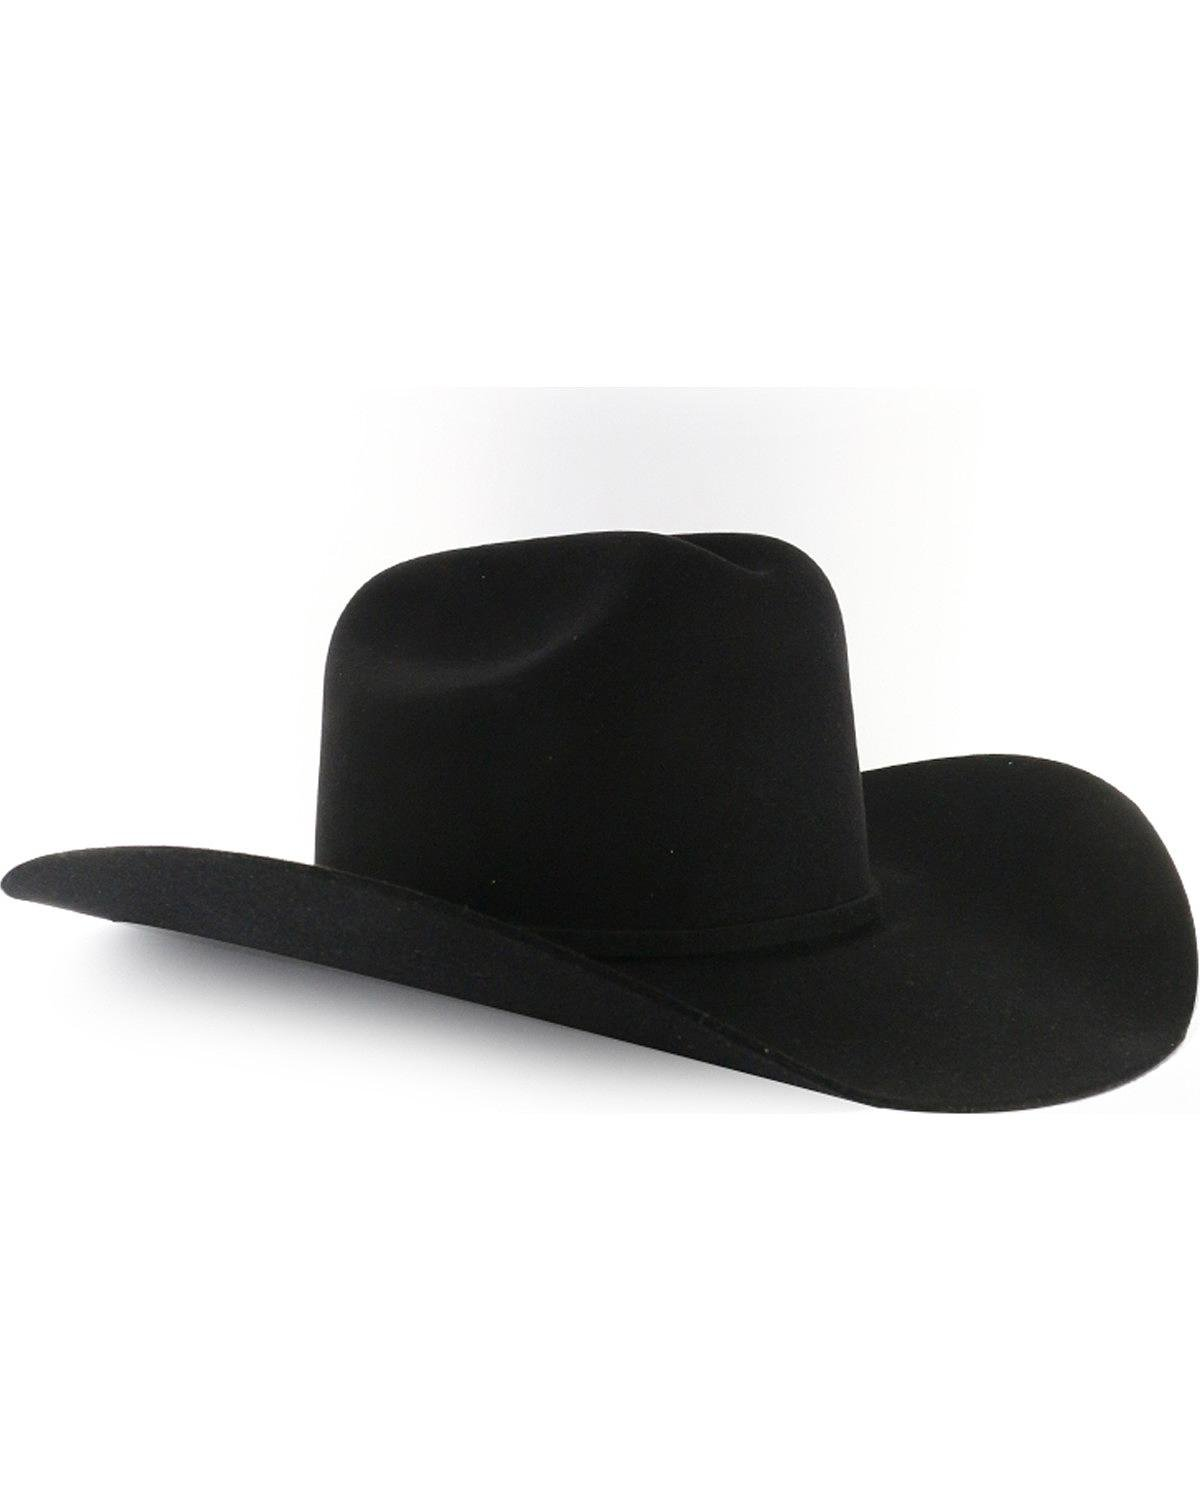 Rodeo King Men's Low 7X Felt Cowboy Hat Black 7 3/8